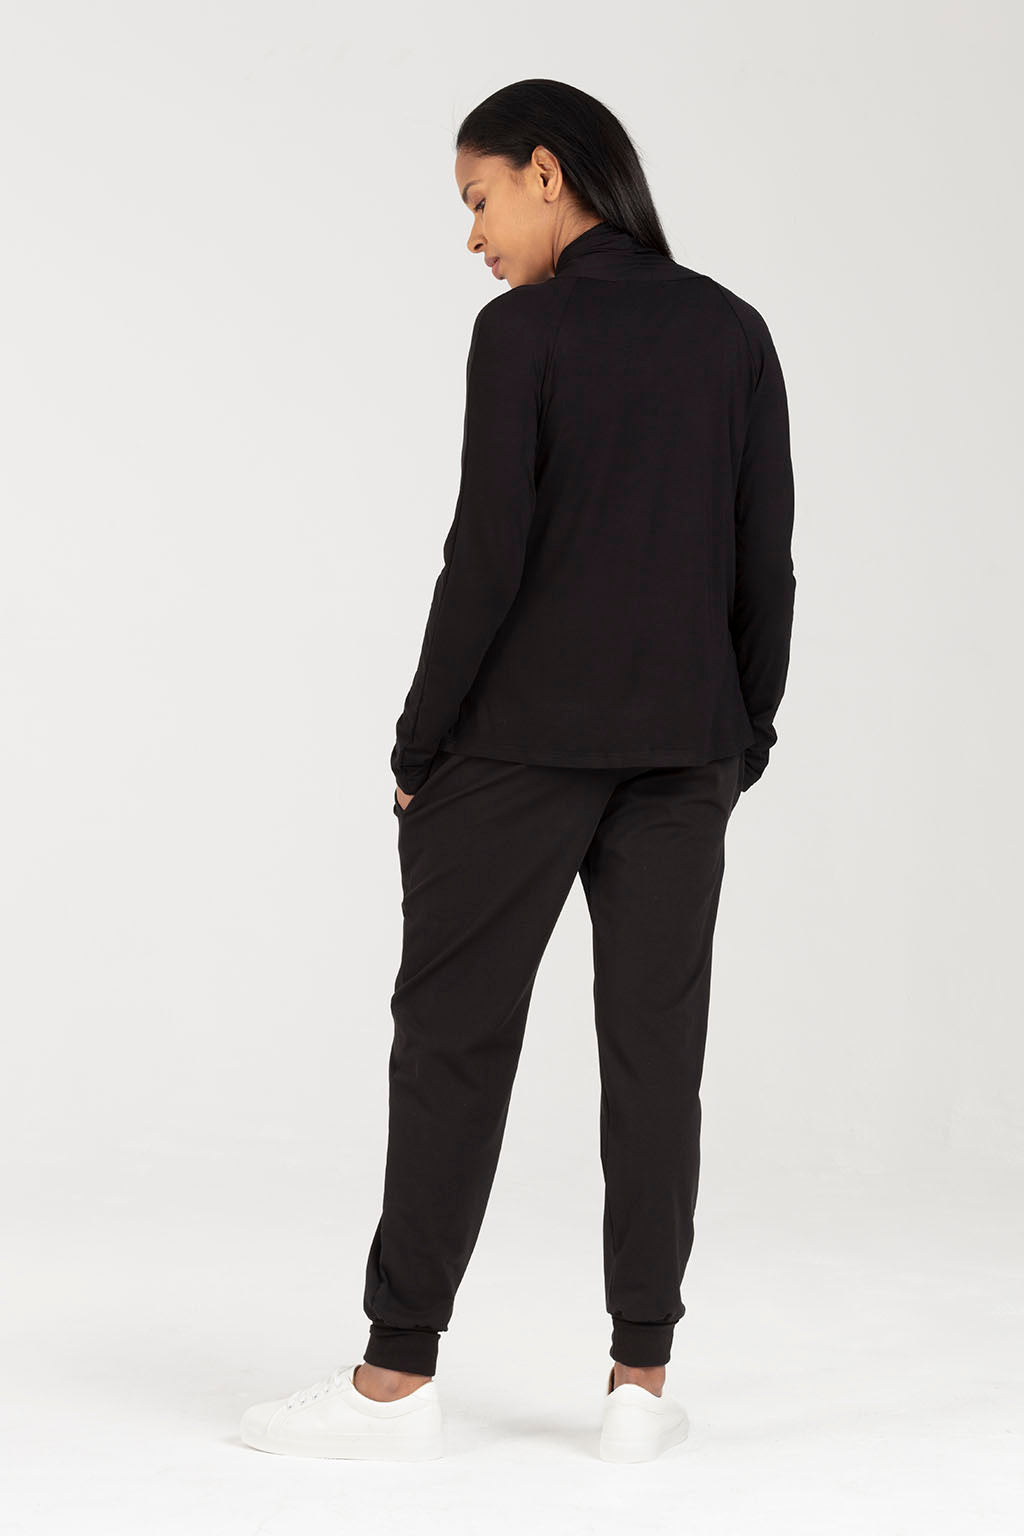 Postnatal Soft Trousers With Pockets - in Black - C Section Support | Ada by Sarka London - Back View